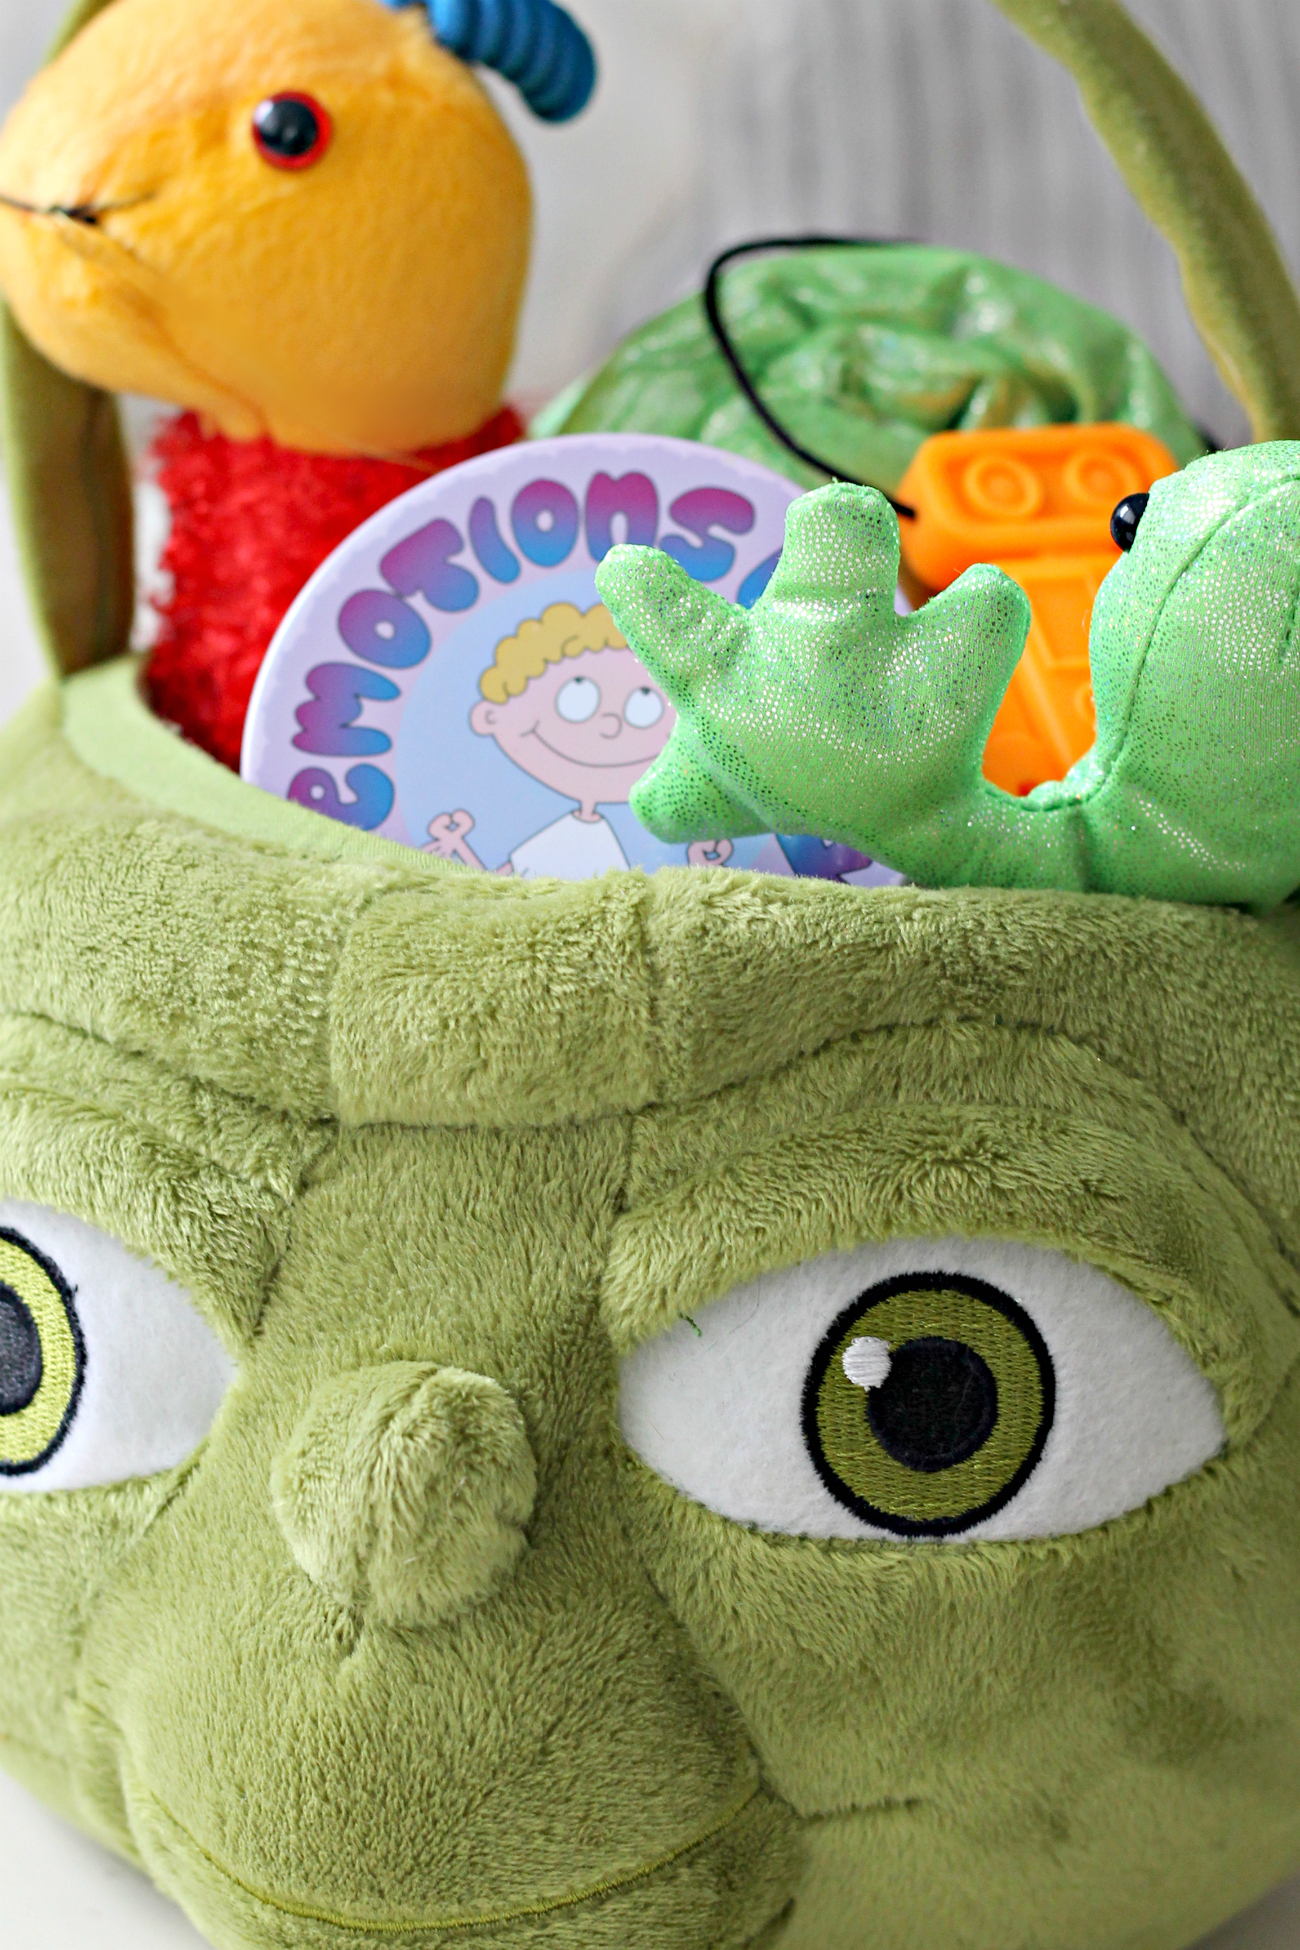 Easter Basket Ideas for Kids on the Autism Spectrum